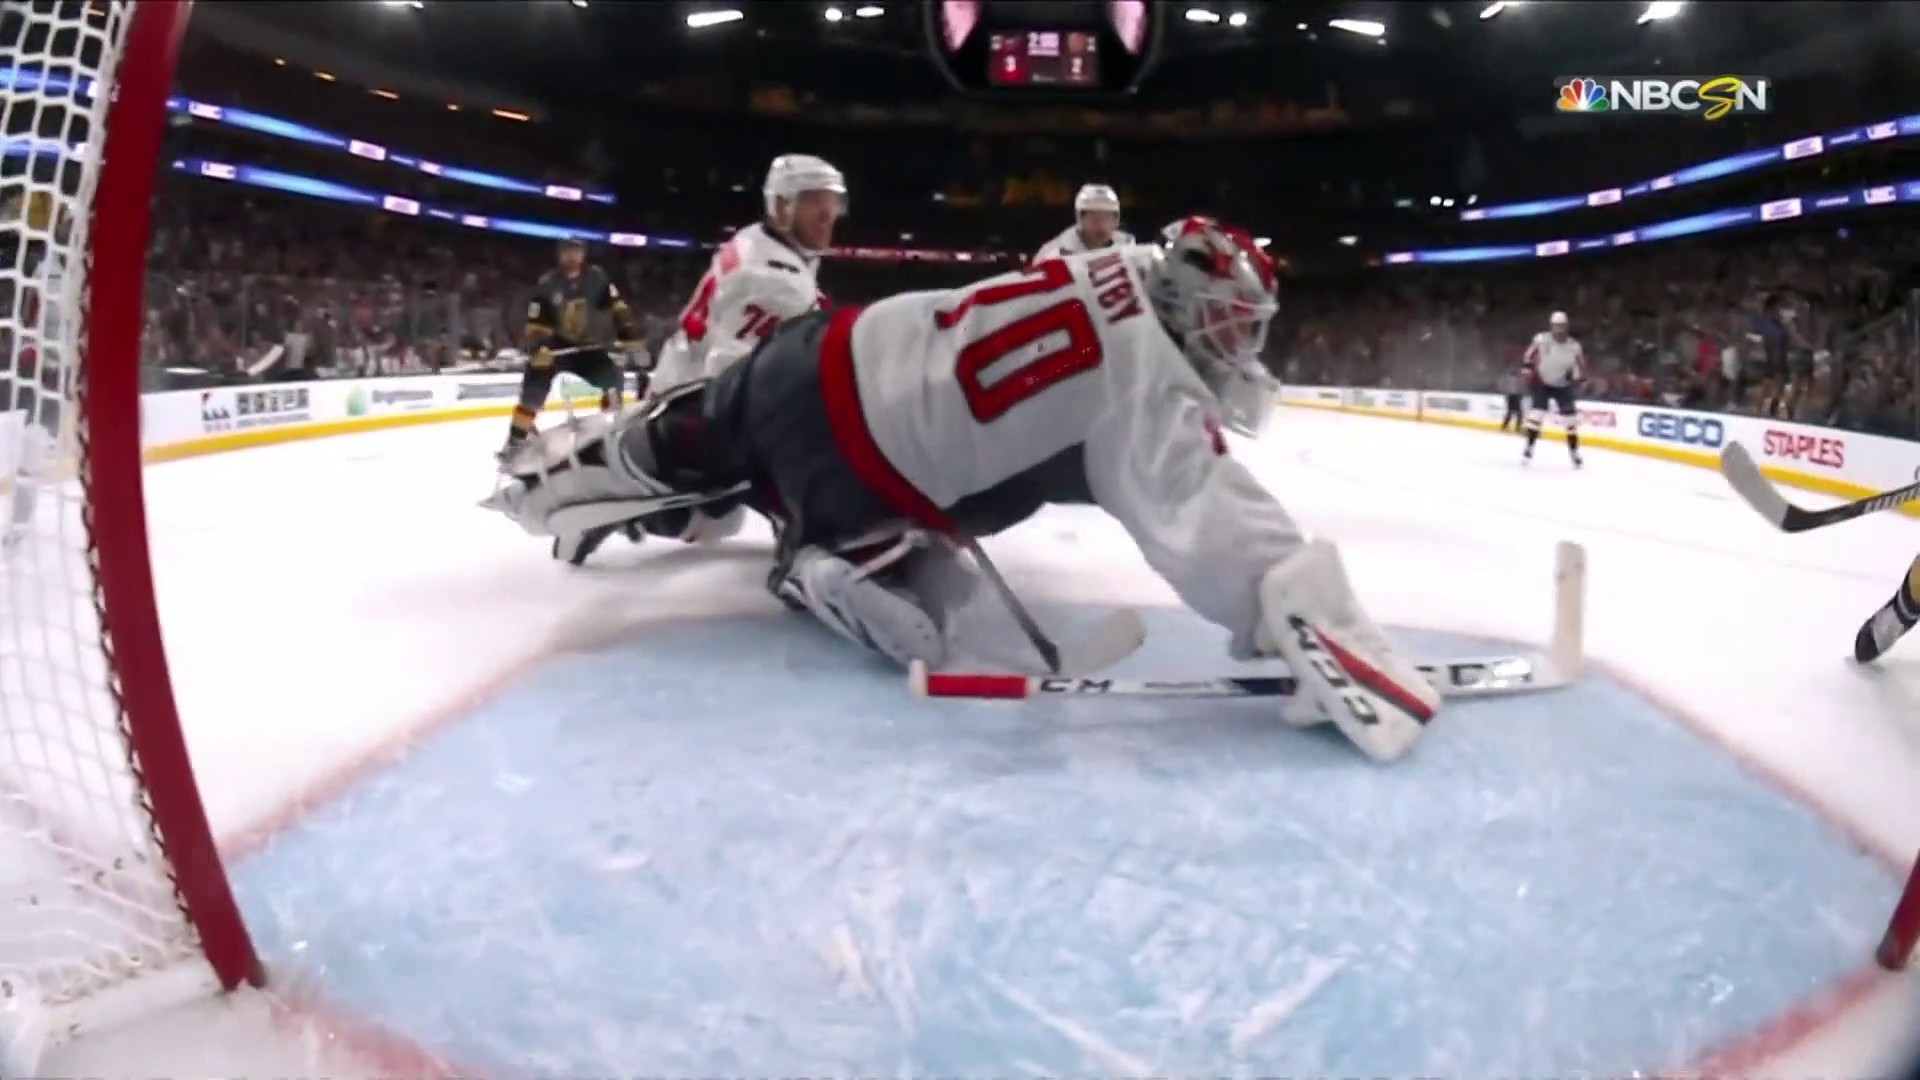 Braden Holtbys Incredible Clutch Save Seals Capitals Victory Nbc